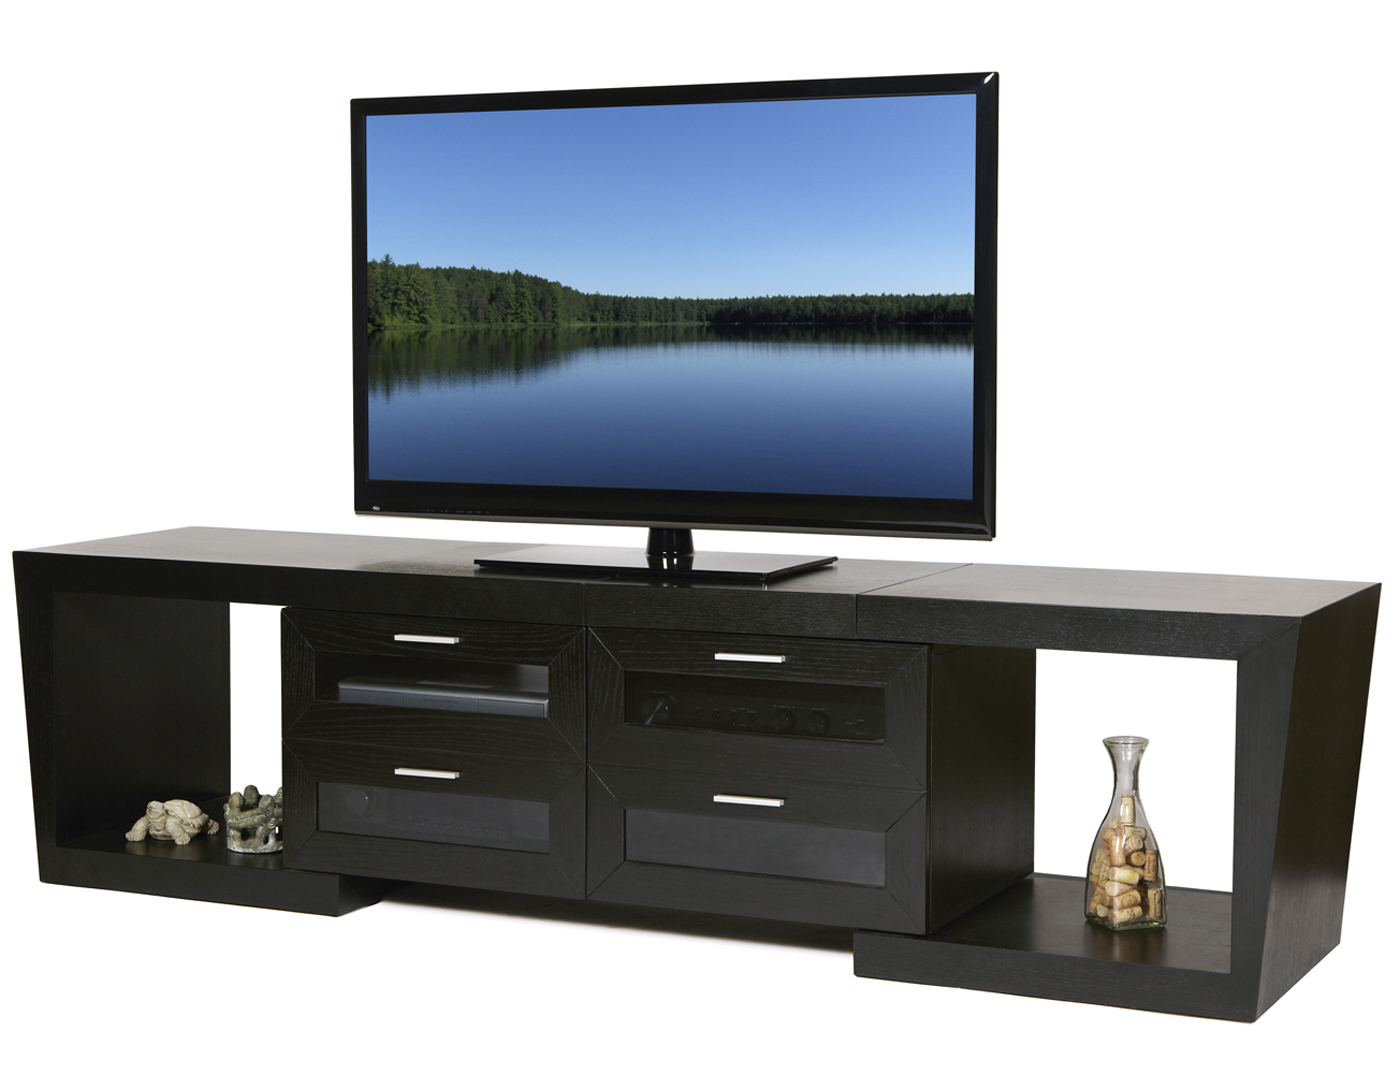 Narrow Tv Stands For Flat Screens Regarding Popular Wood Corner Tv Stands For Flat Screens Small Tv Stands For Flat Screens (Gallery 17 of 20)